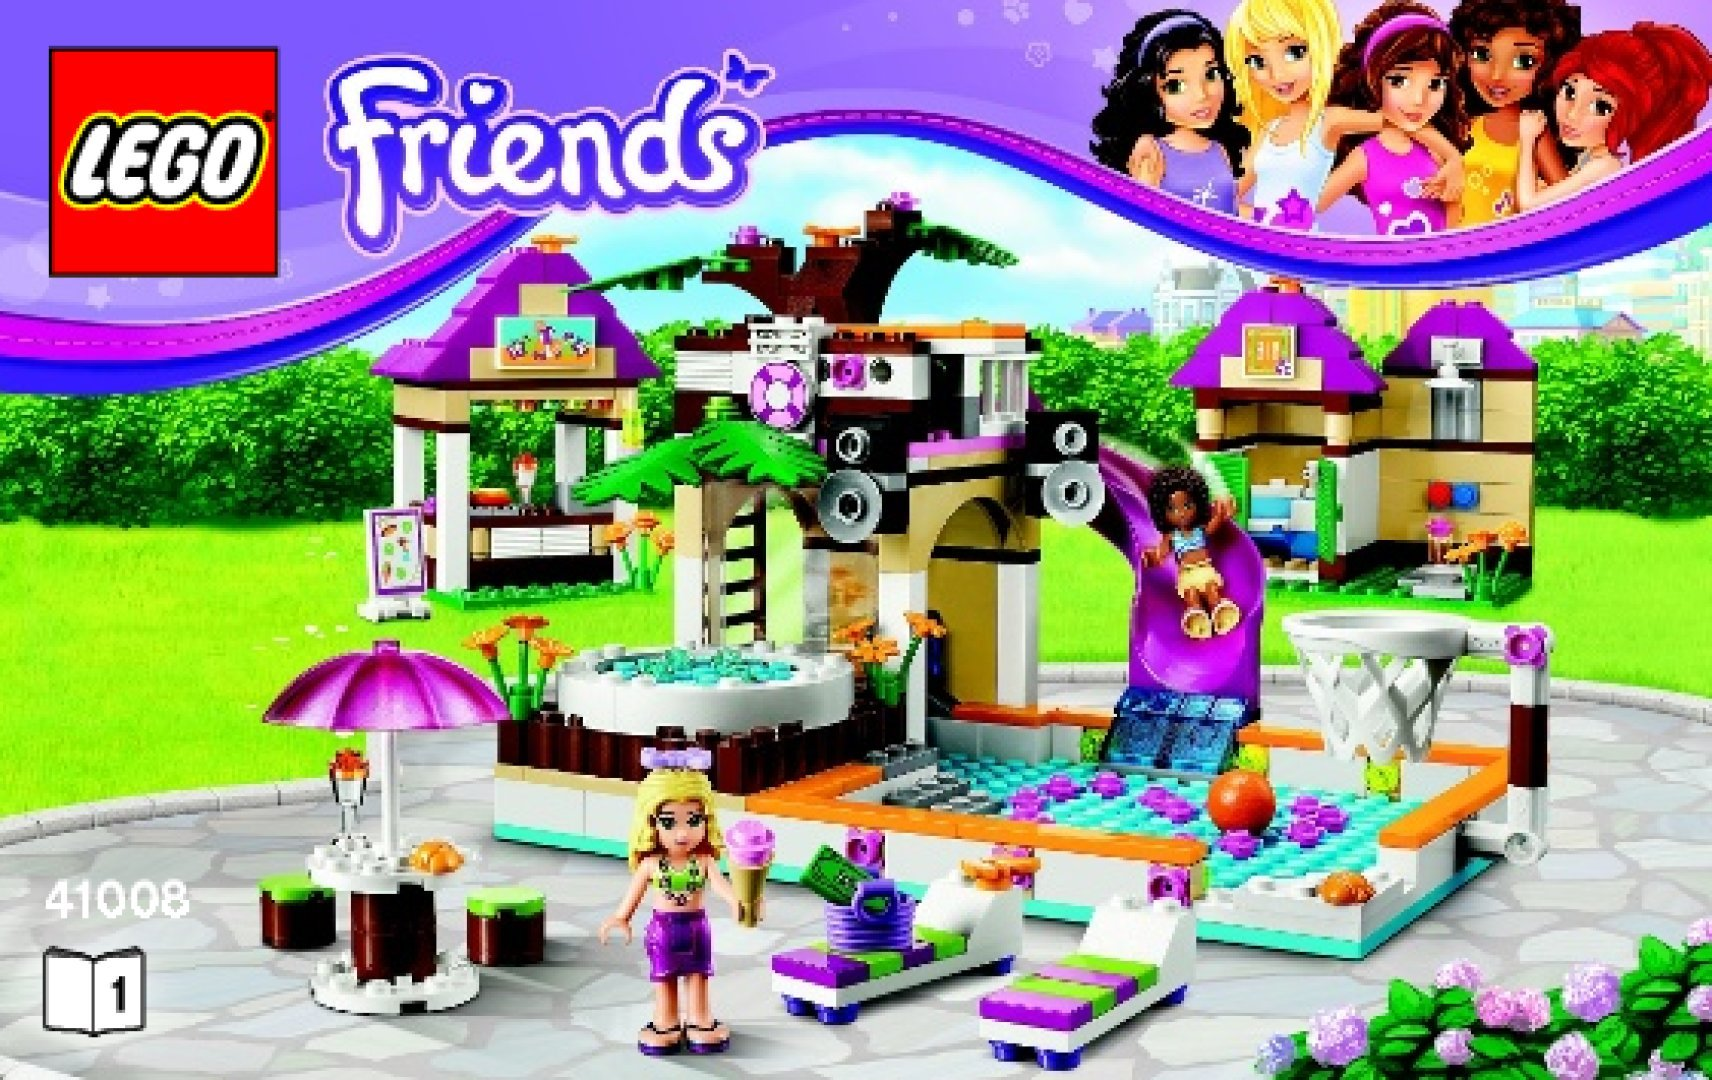 Lego Friends Piscina Notice Instructions De Montage Lego Friends 41008